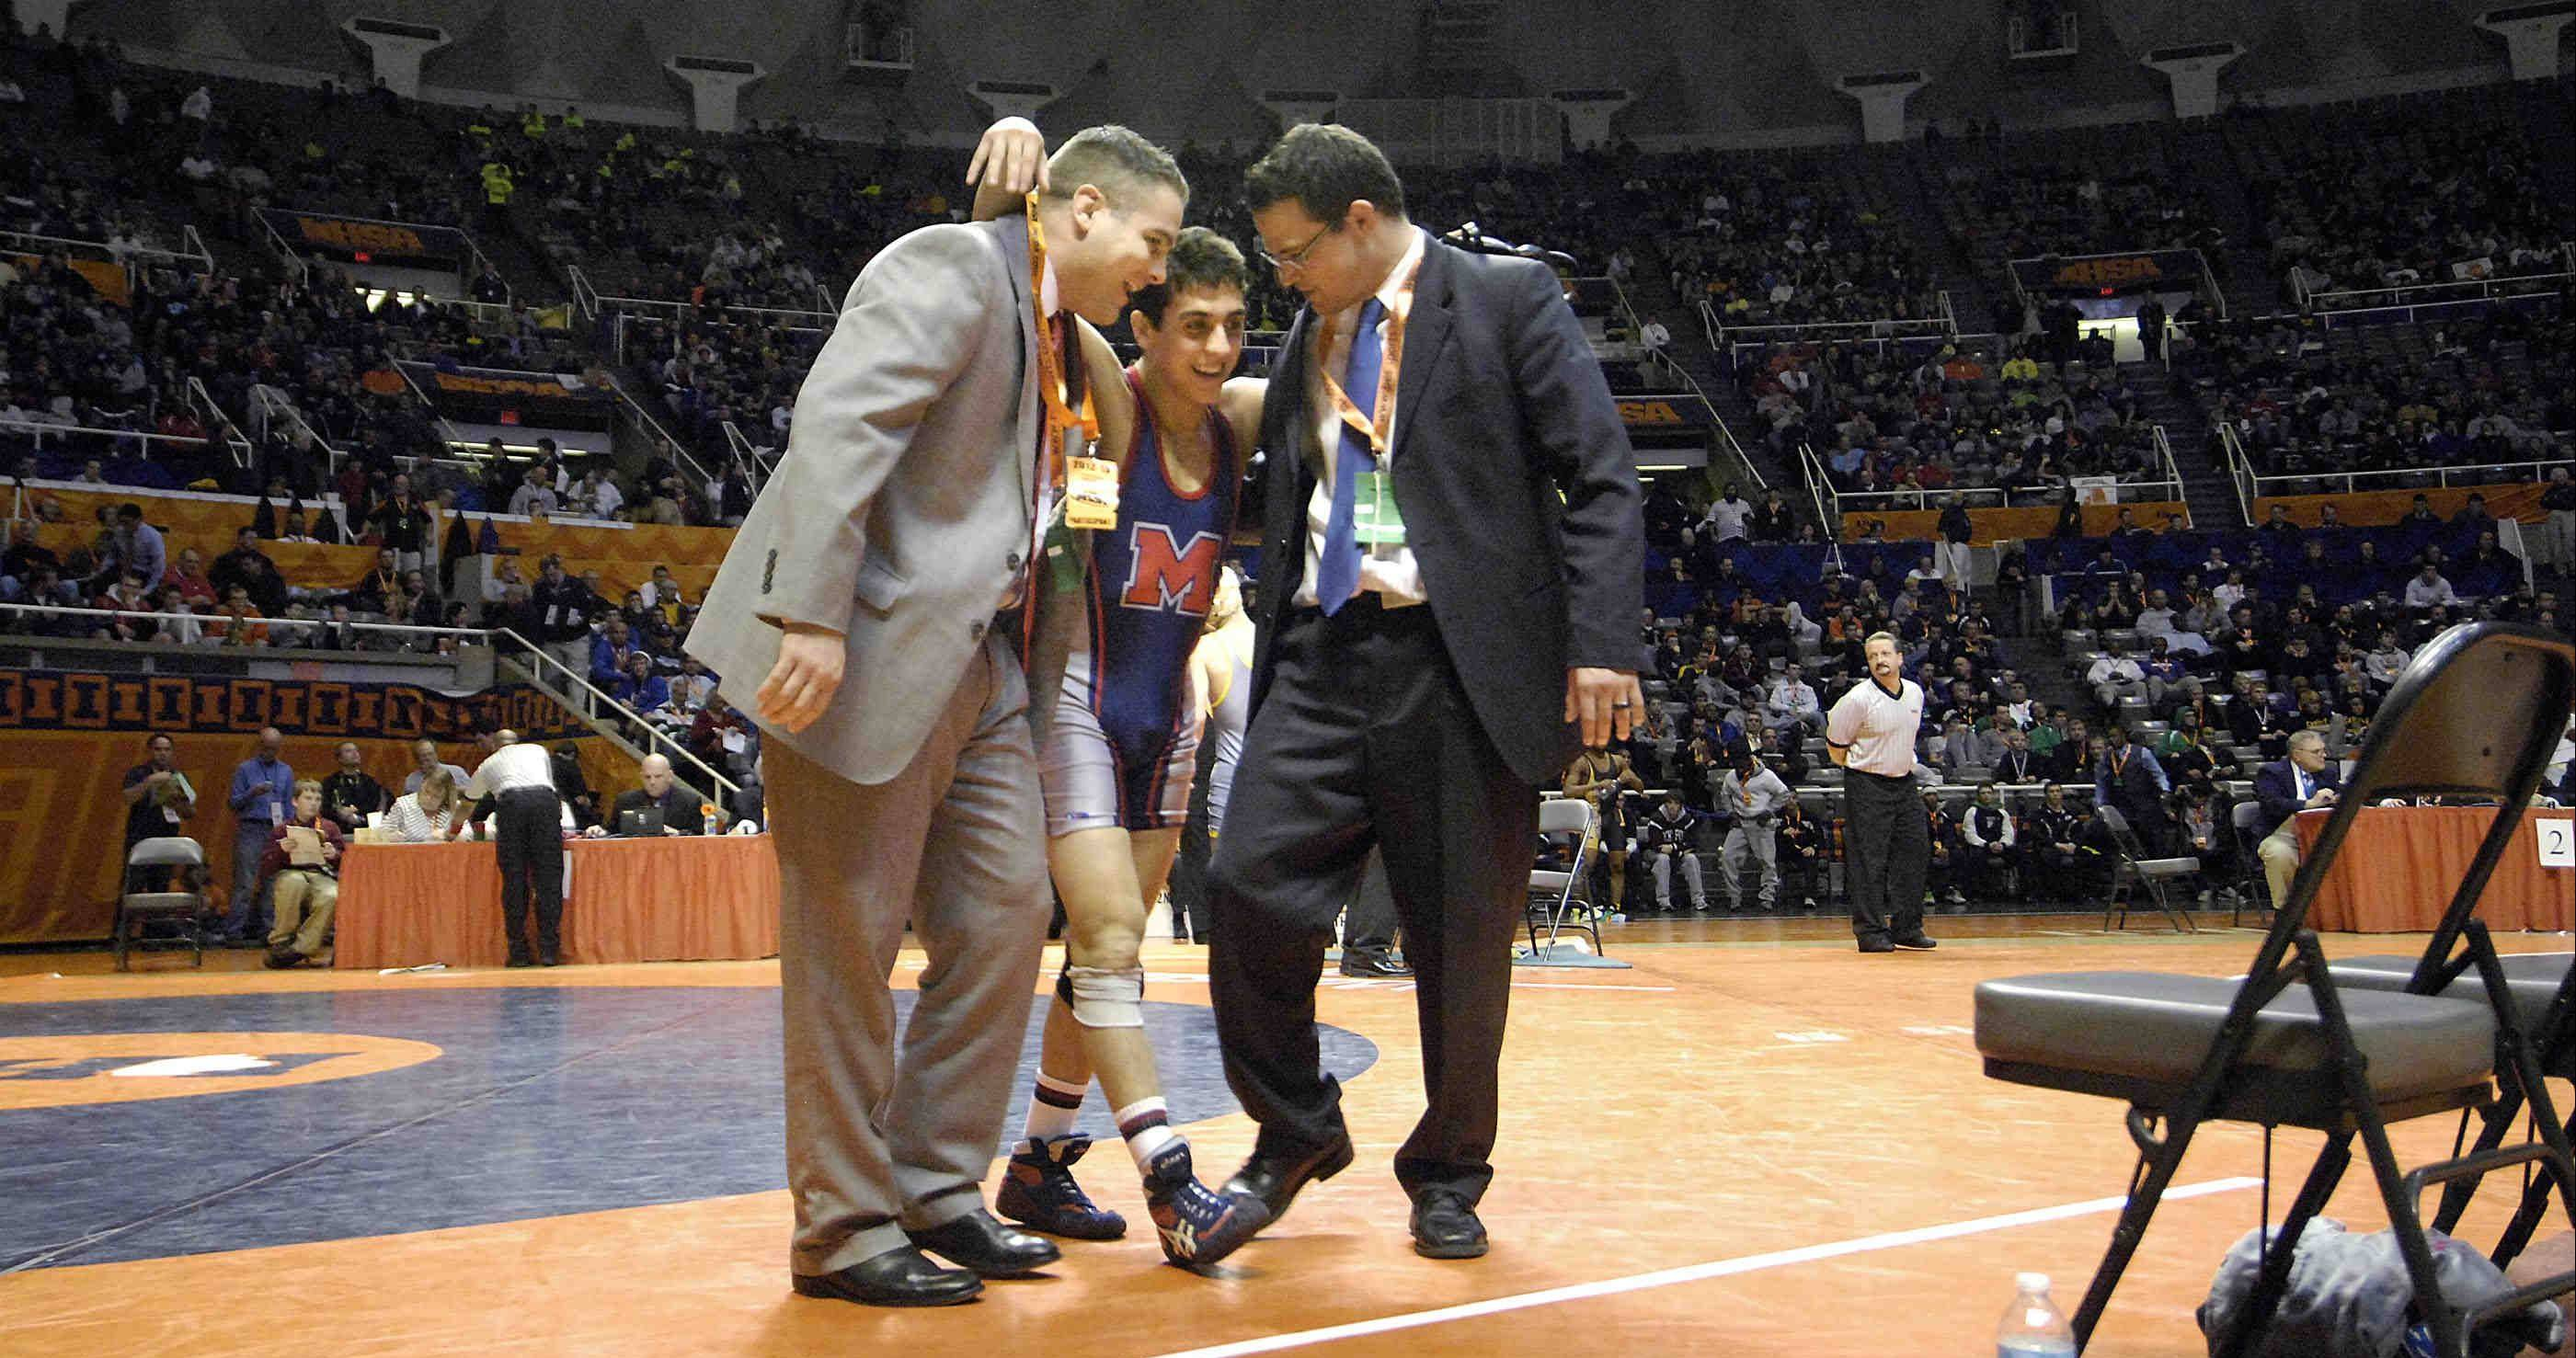 Johnny Jimenez is flanked by his Marmion Academy coaches after winning the Class 3A 120-pound IHSA championship final wrestling match at Assembly Hall in Champaign Saturday.